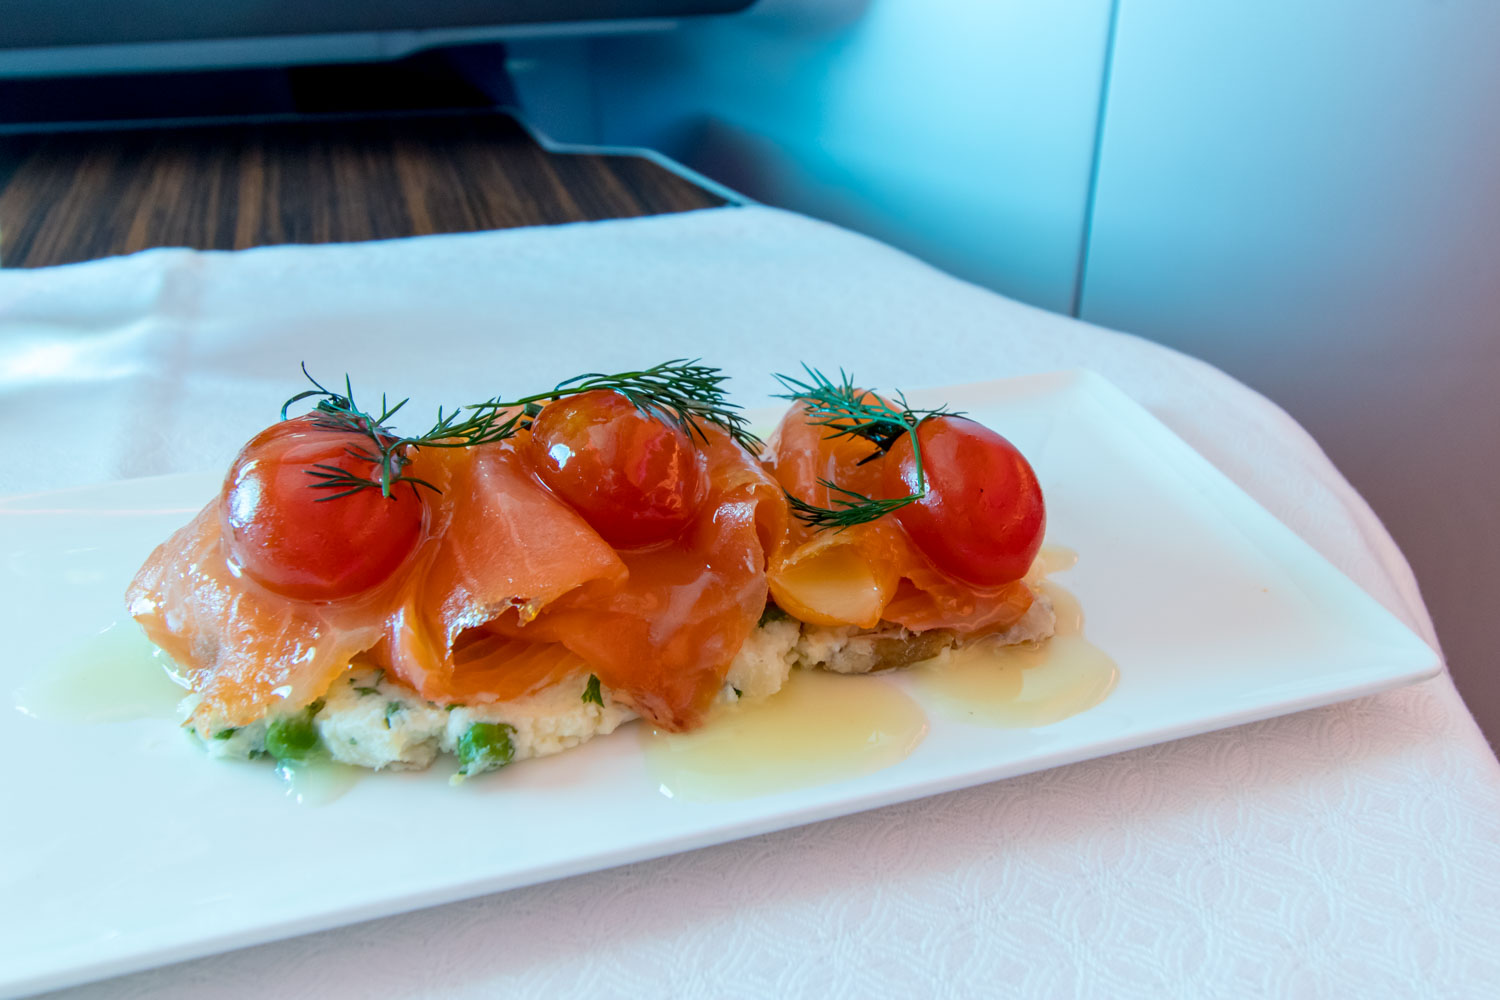 Smoked Salmon and Potato Salad Appetizer